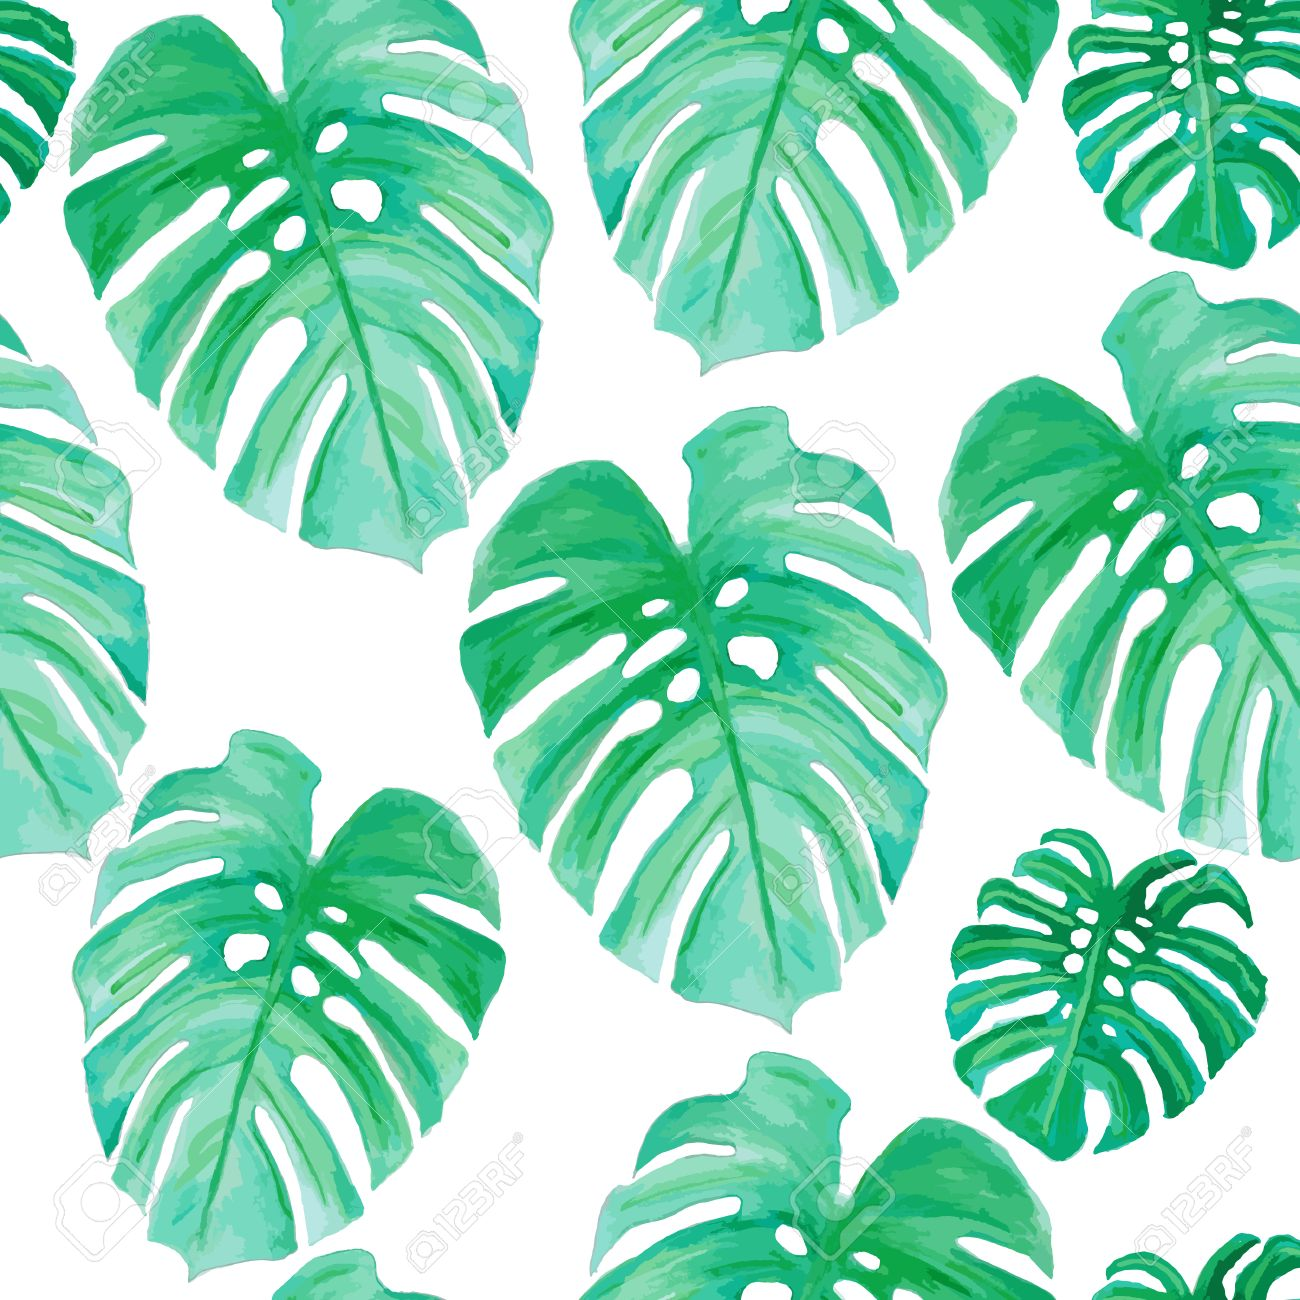 Watercolor Drawing Palm Trees Or Green Leaves Seamless Pattern Royalty Free Cliparts Vectors And Stock Illustration Image 56875351